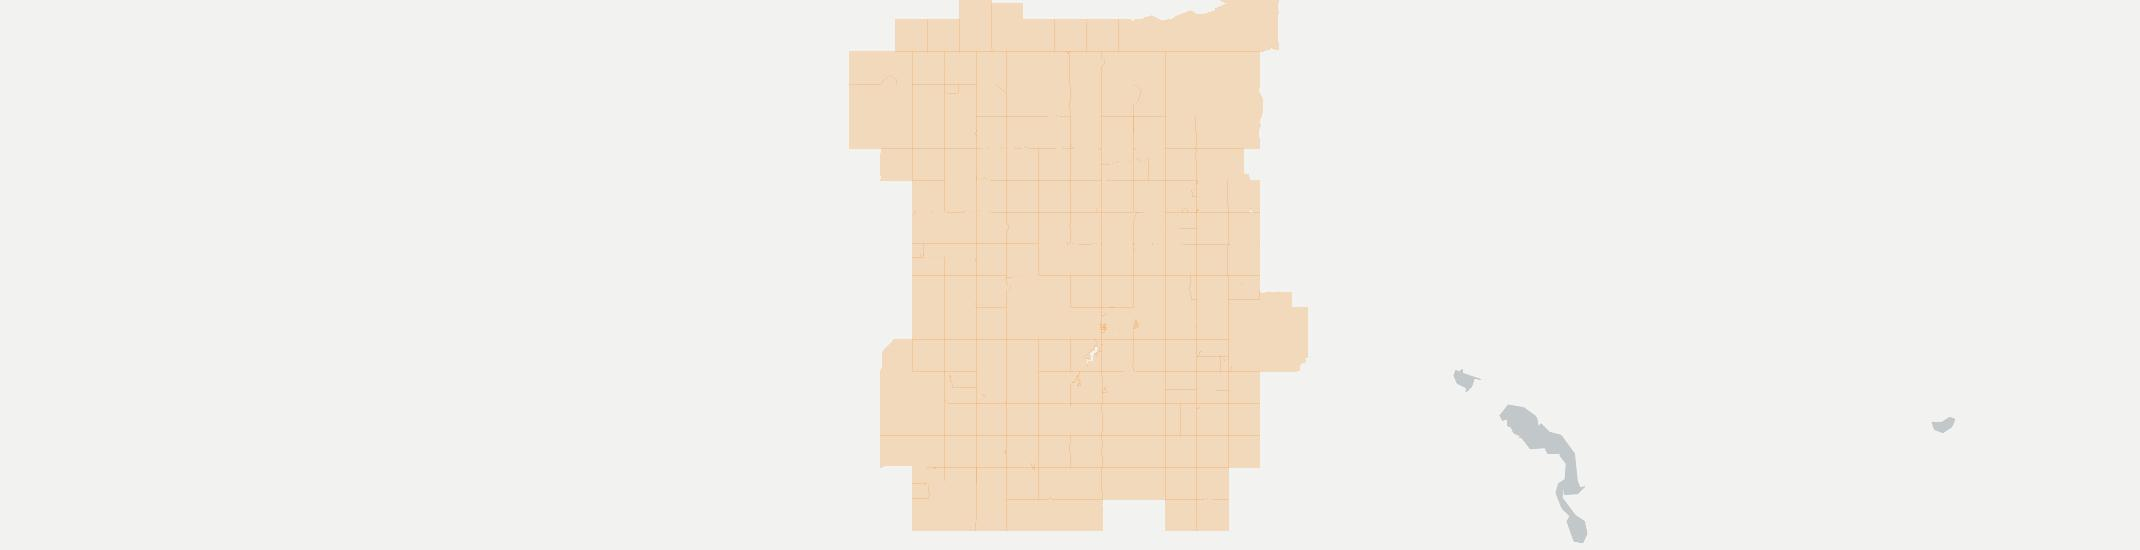 Mcgregor Internet Competition Map. Click for interactive map.